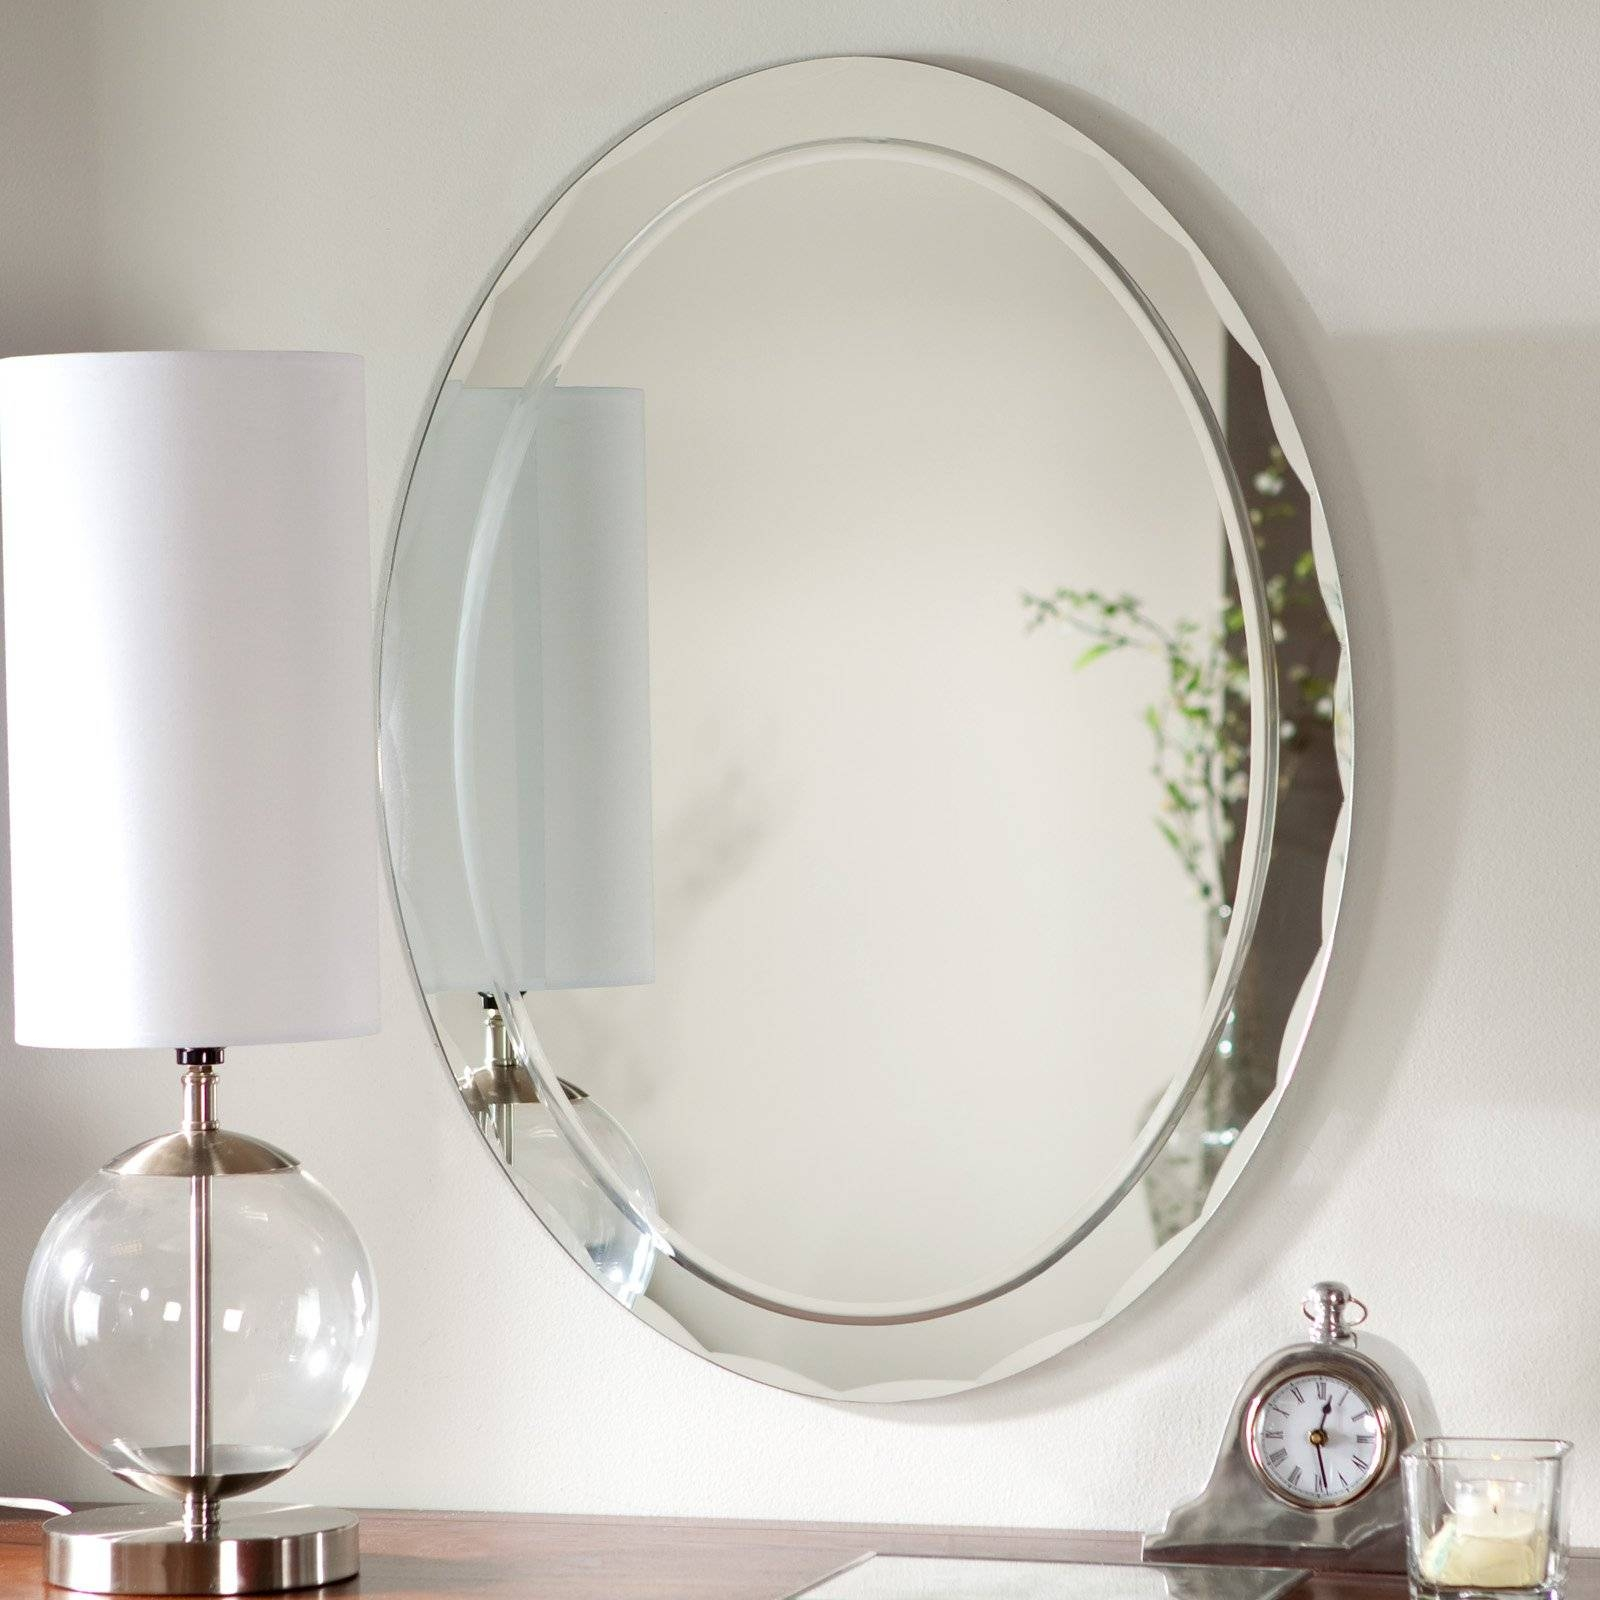 Décor Wonderland Frameless Aldo Wall Mirror - 23.5W X 31.5H In pertaining to Oval Wall Mirrors (Image 7 of 25)